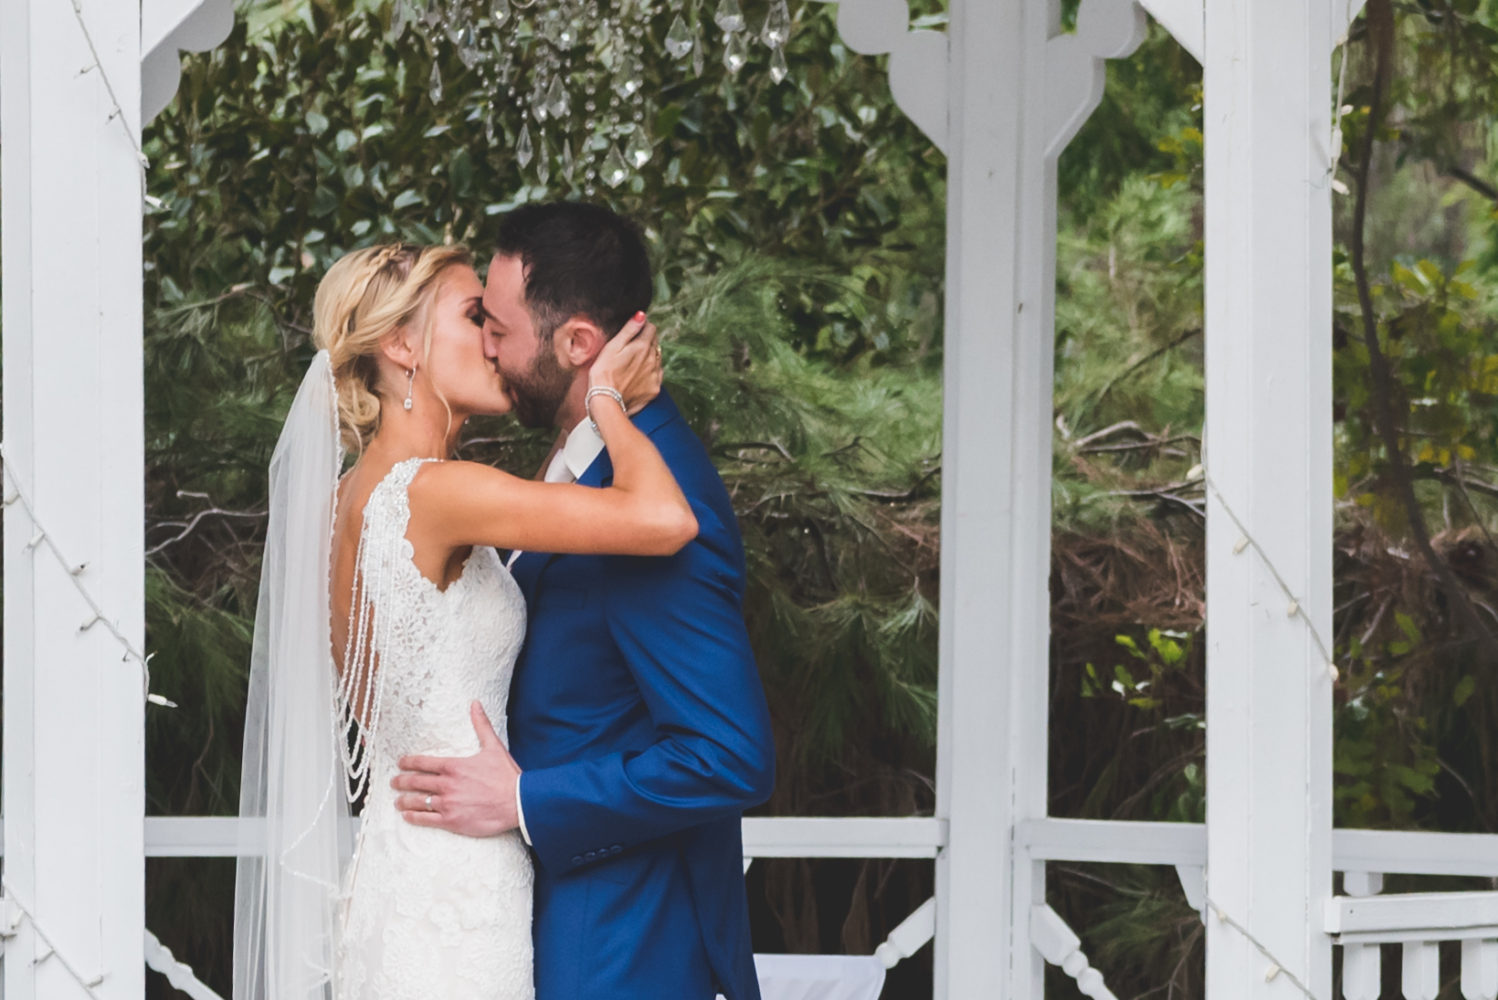 Orange County bride and groom first kiss by wedding photographer Brad Rauch